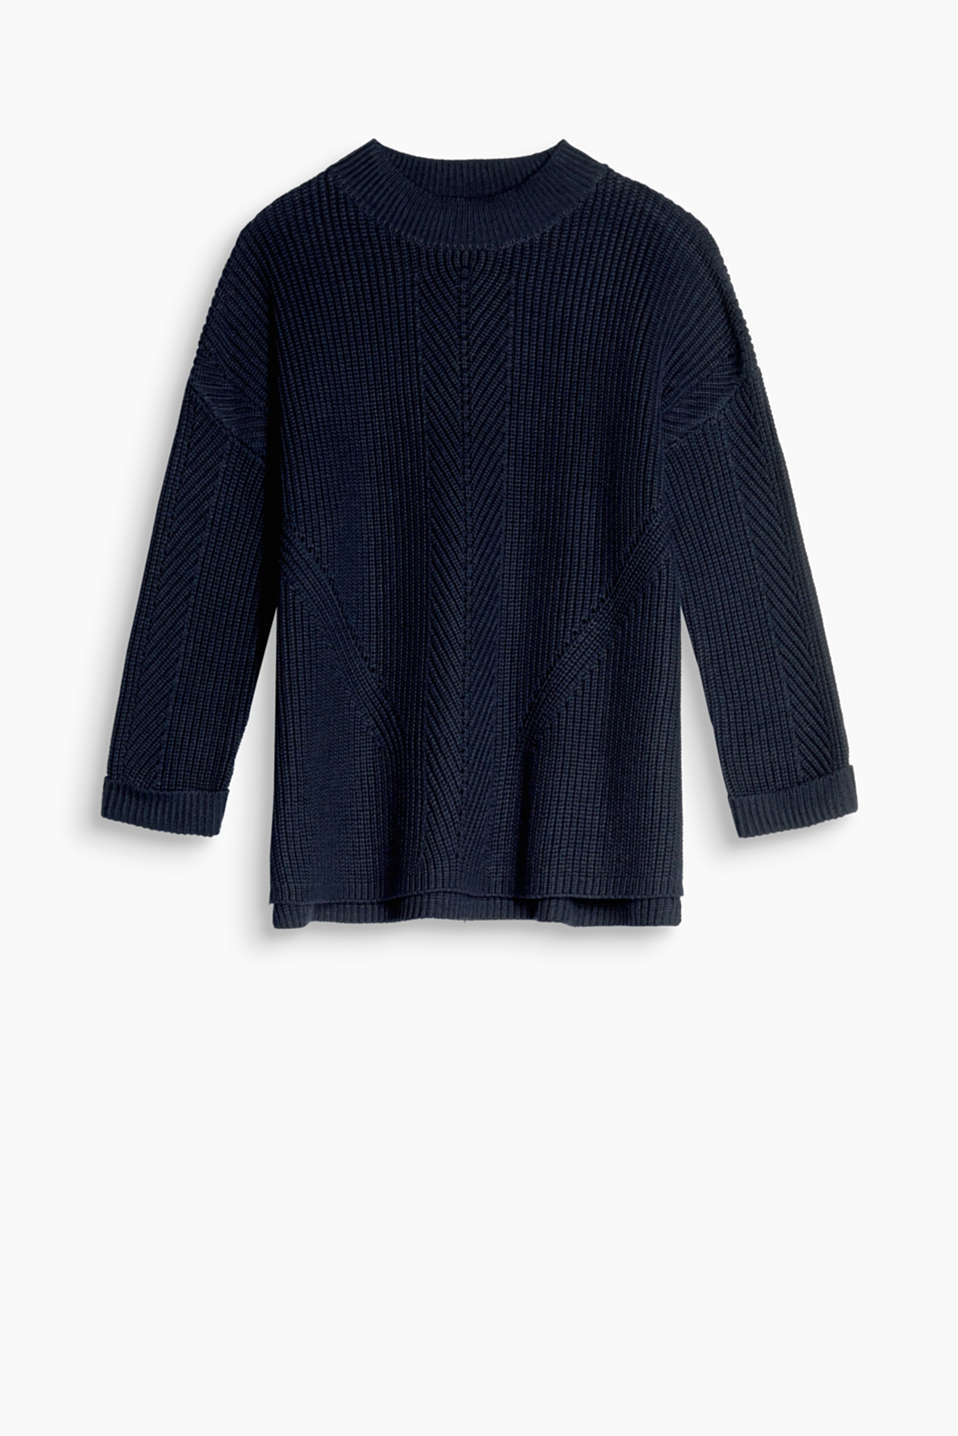 This sporty jumper with interwoven accents and three-quarter length sleeves show just how casual knits can be